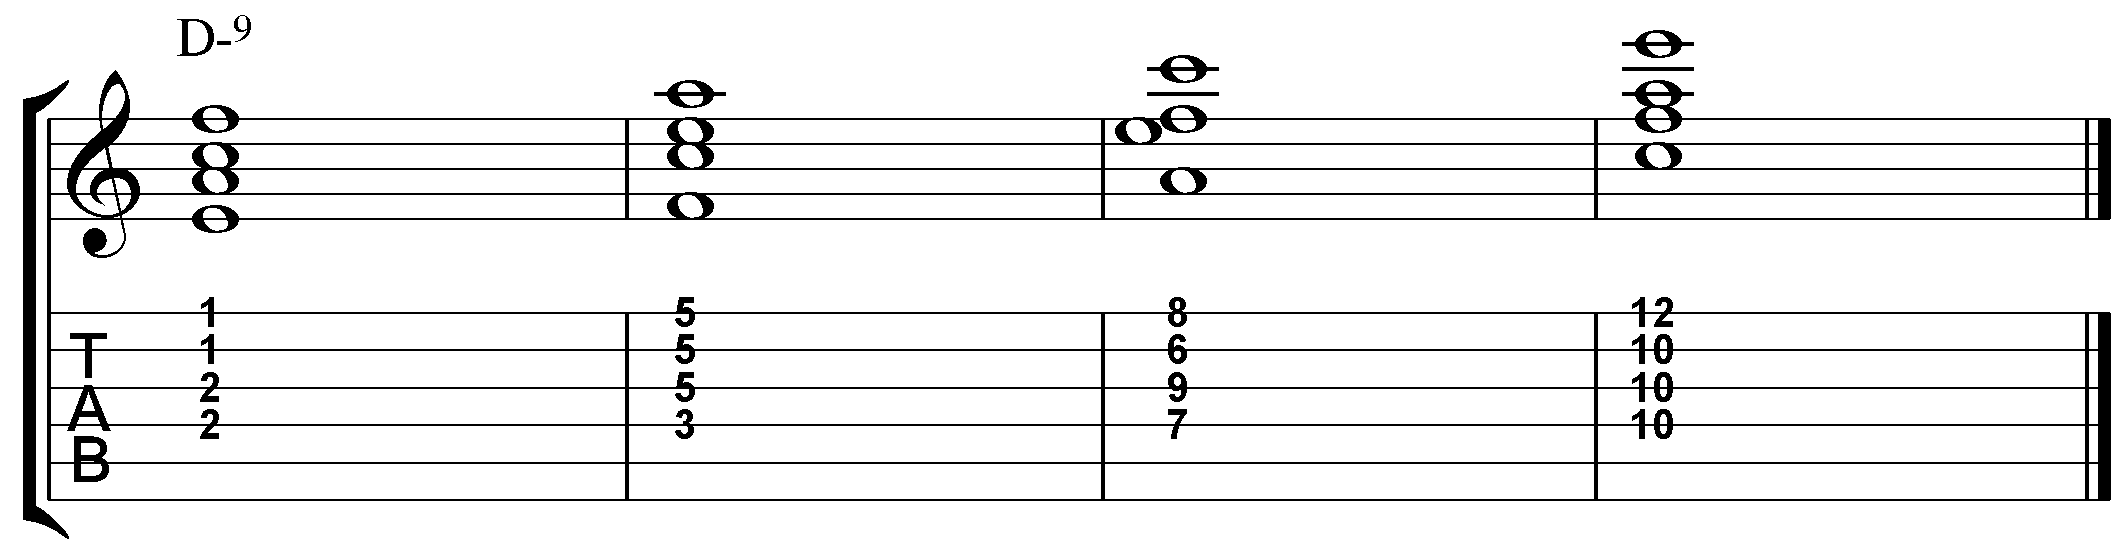 How to play minor 9th chords on guitar jamie holroyd guitar how to play minor 9th chords example 1 hexwebz Choice Image